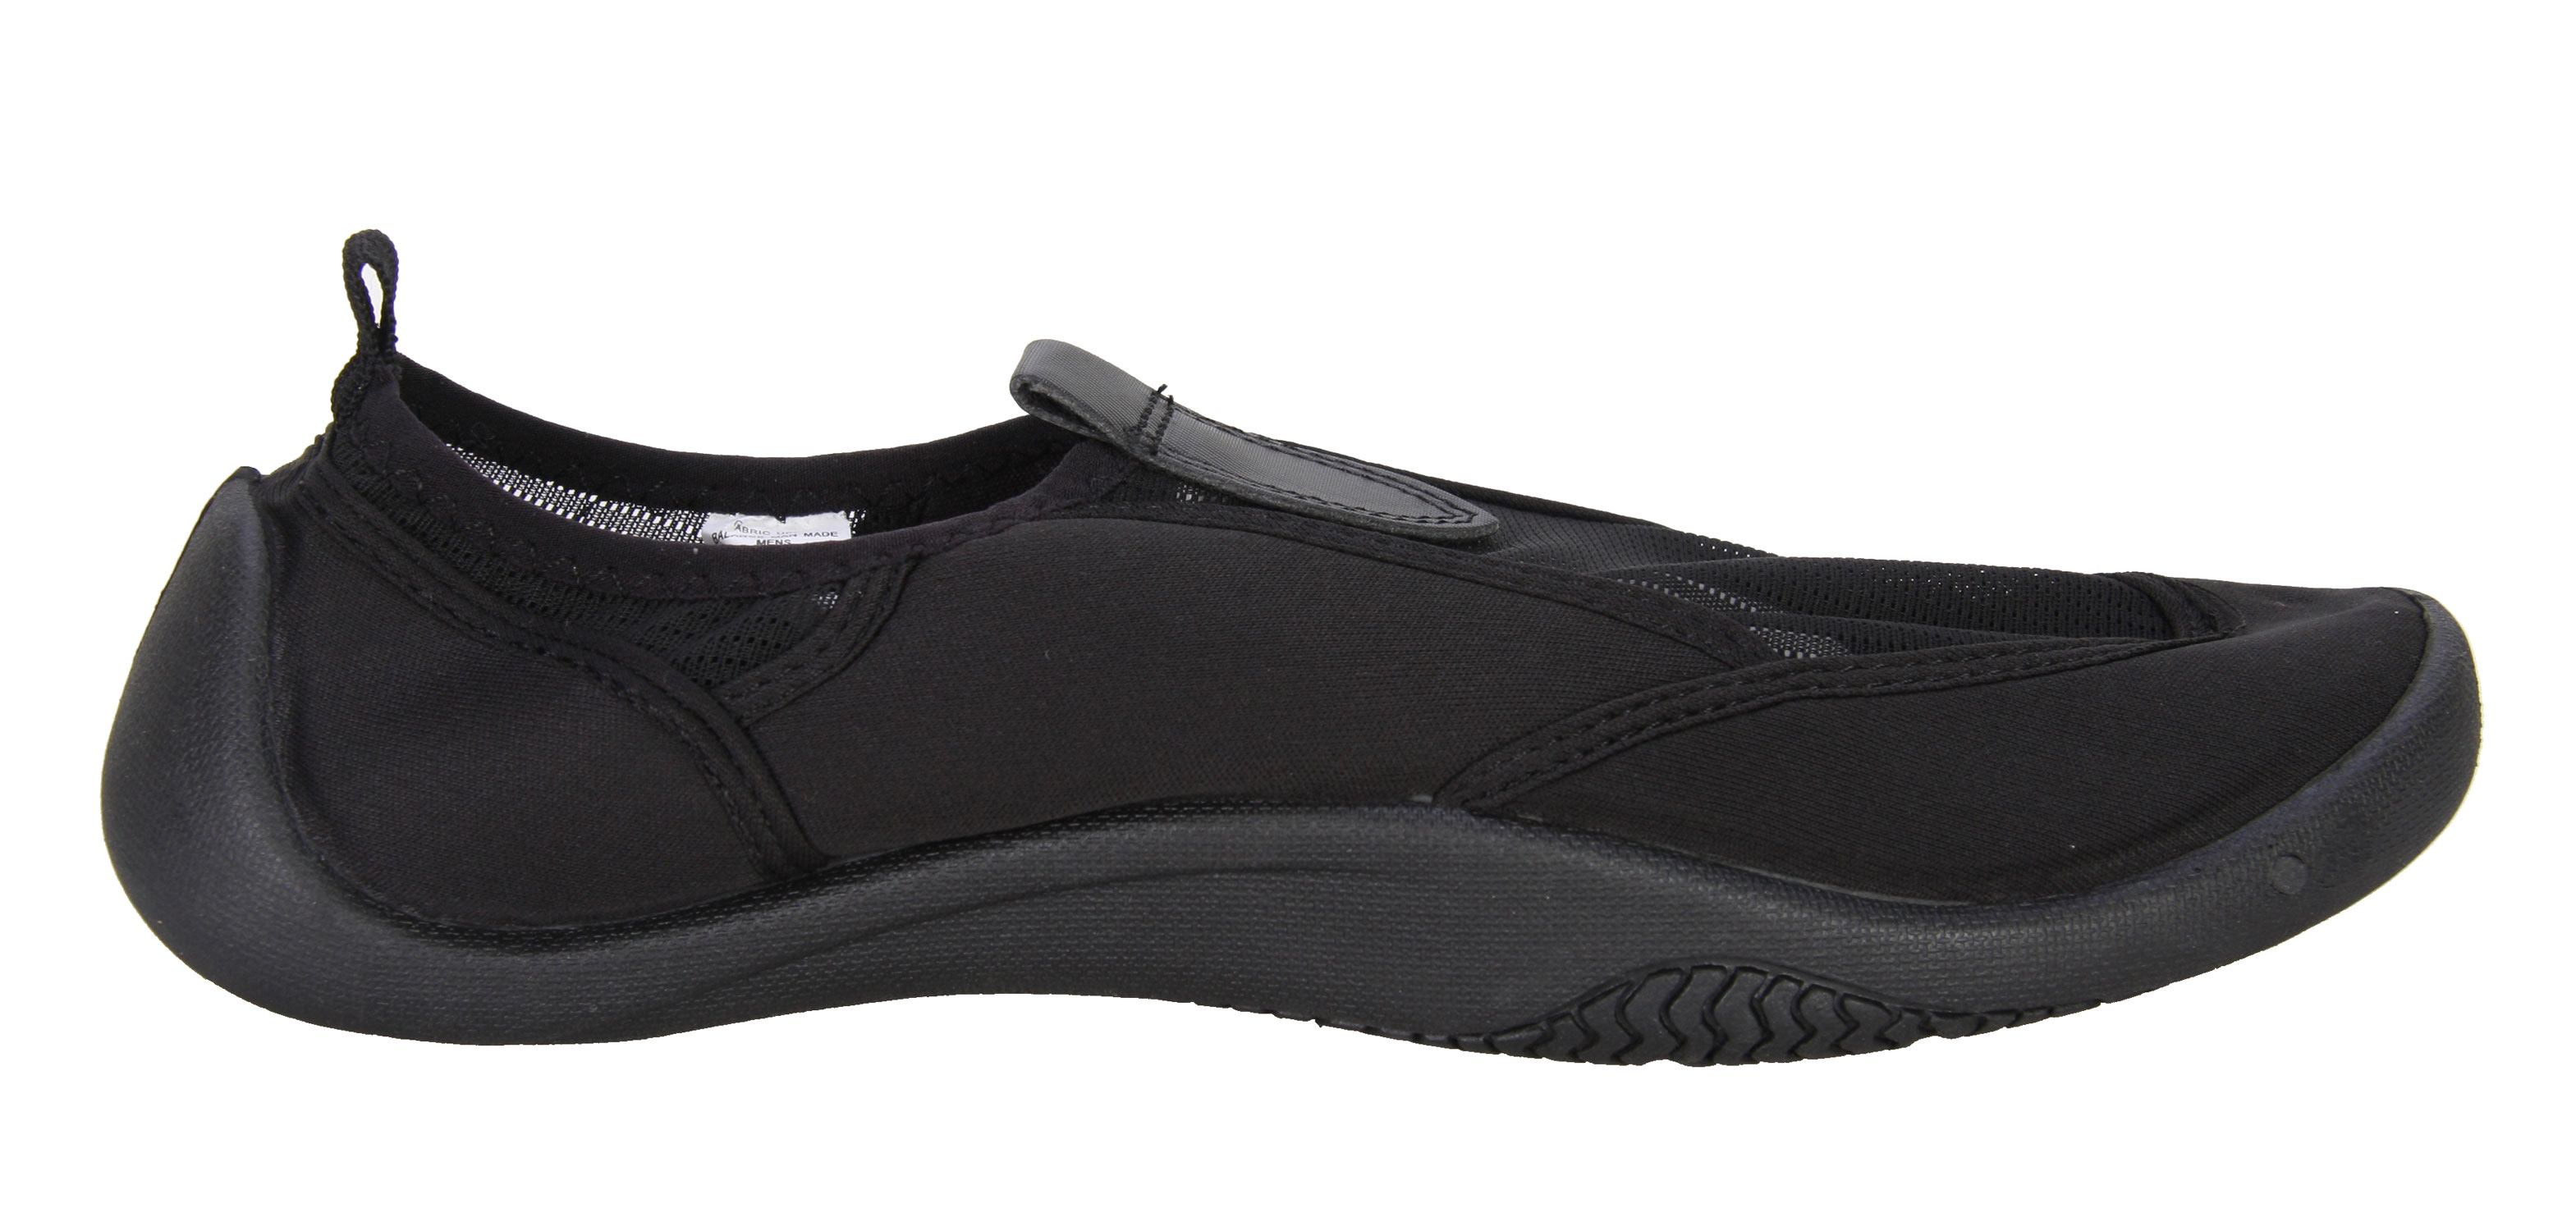 Key Features of The Rafters Orlando Water Shoes: Nylon Jersey with Nylon Mesh Upper TPU Injection Outsole Removable Sockliner - $11.95